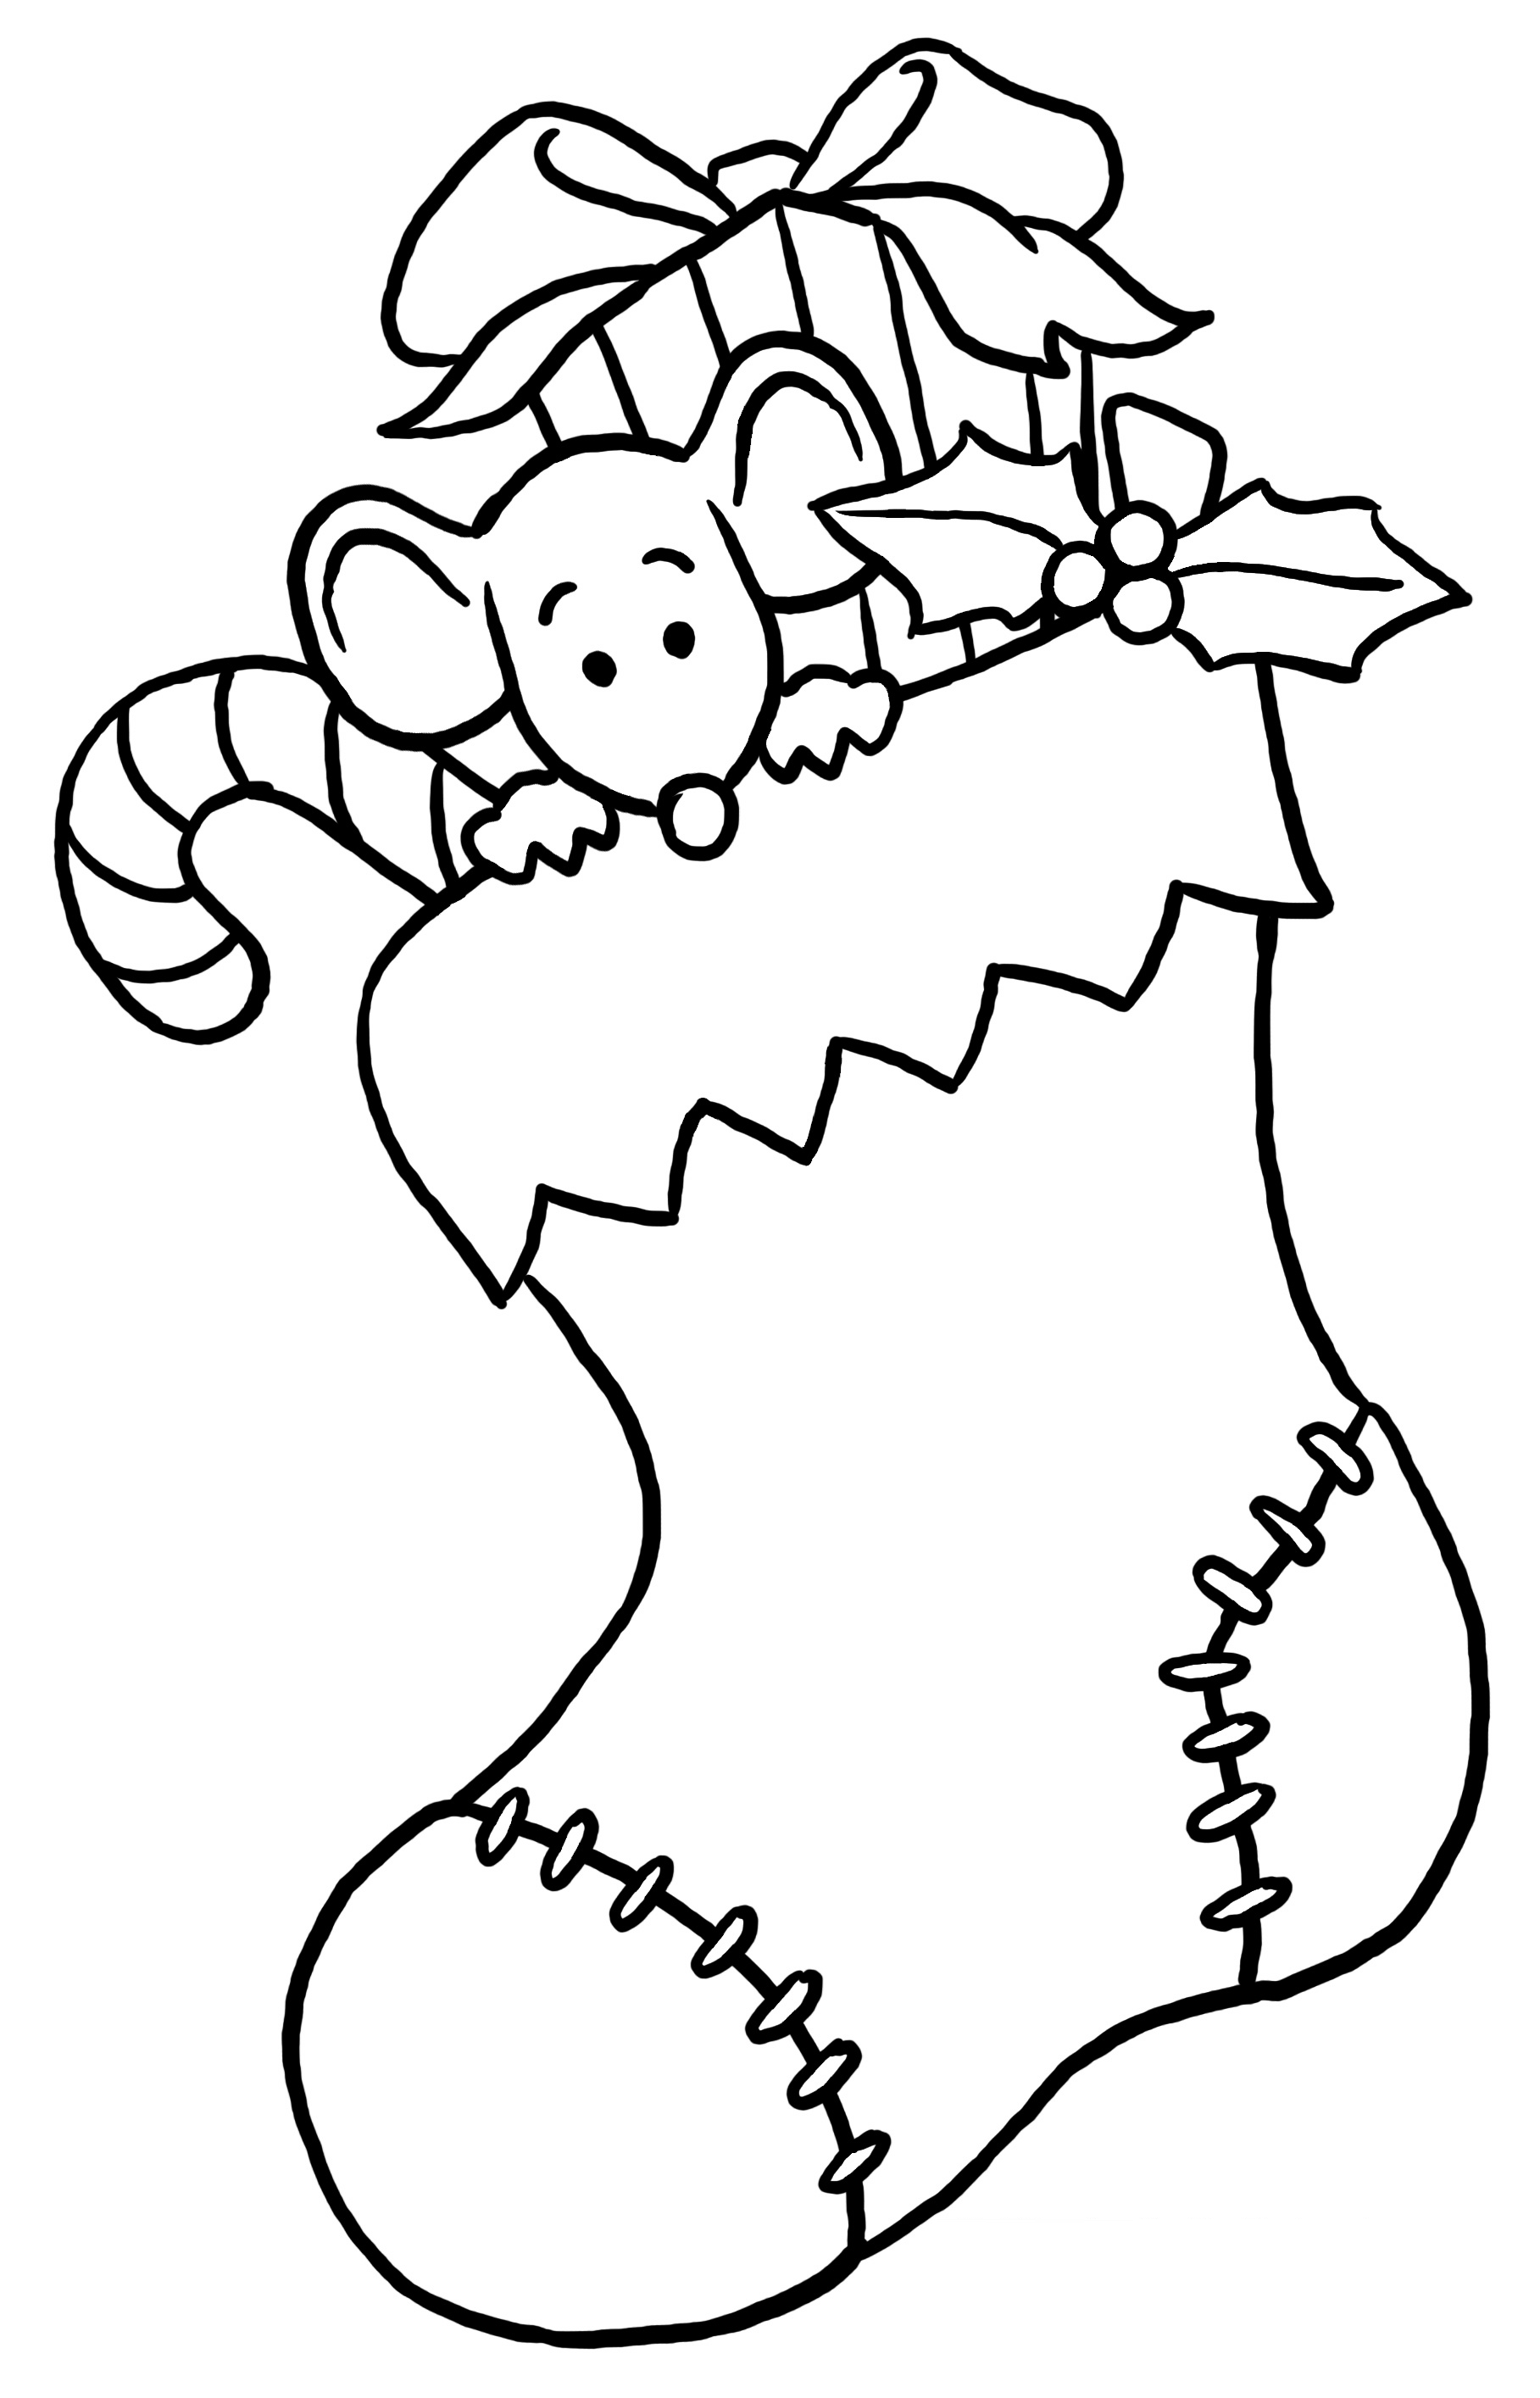 Christmas Coloring Pages For Toddlers Free : Christmas coloring pages kids